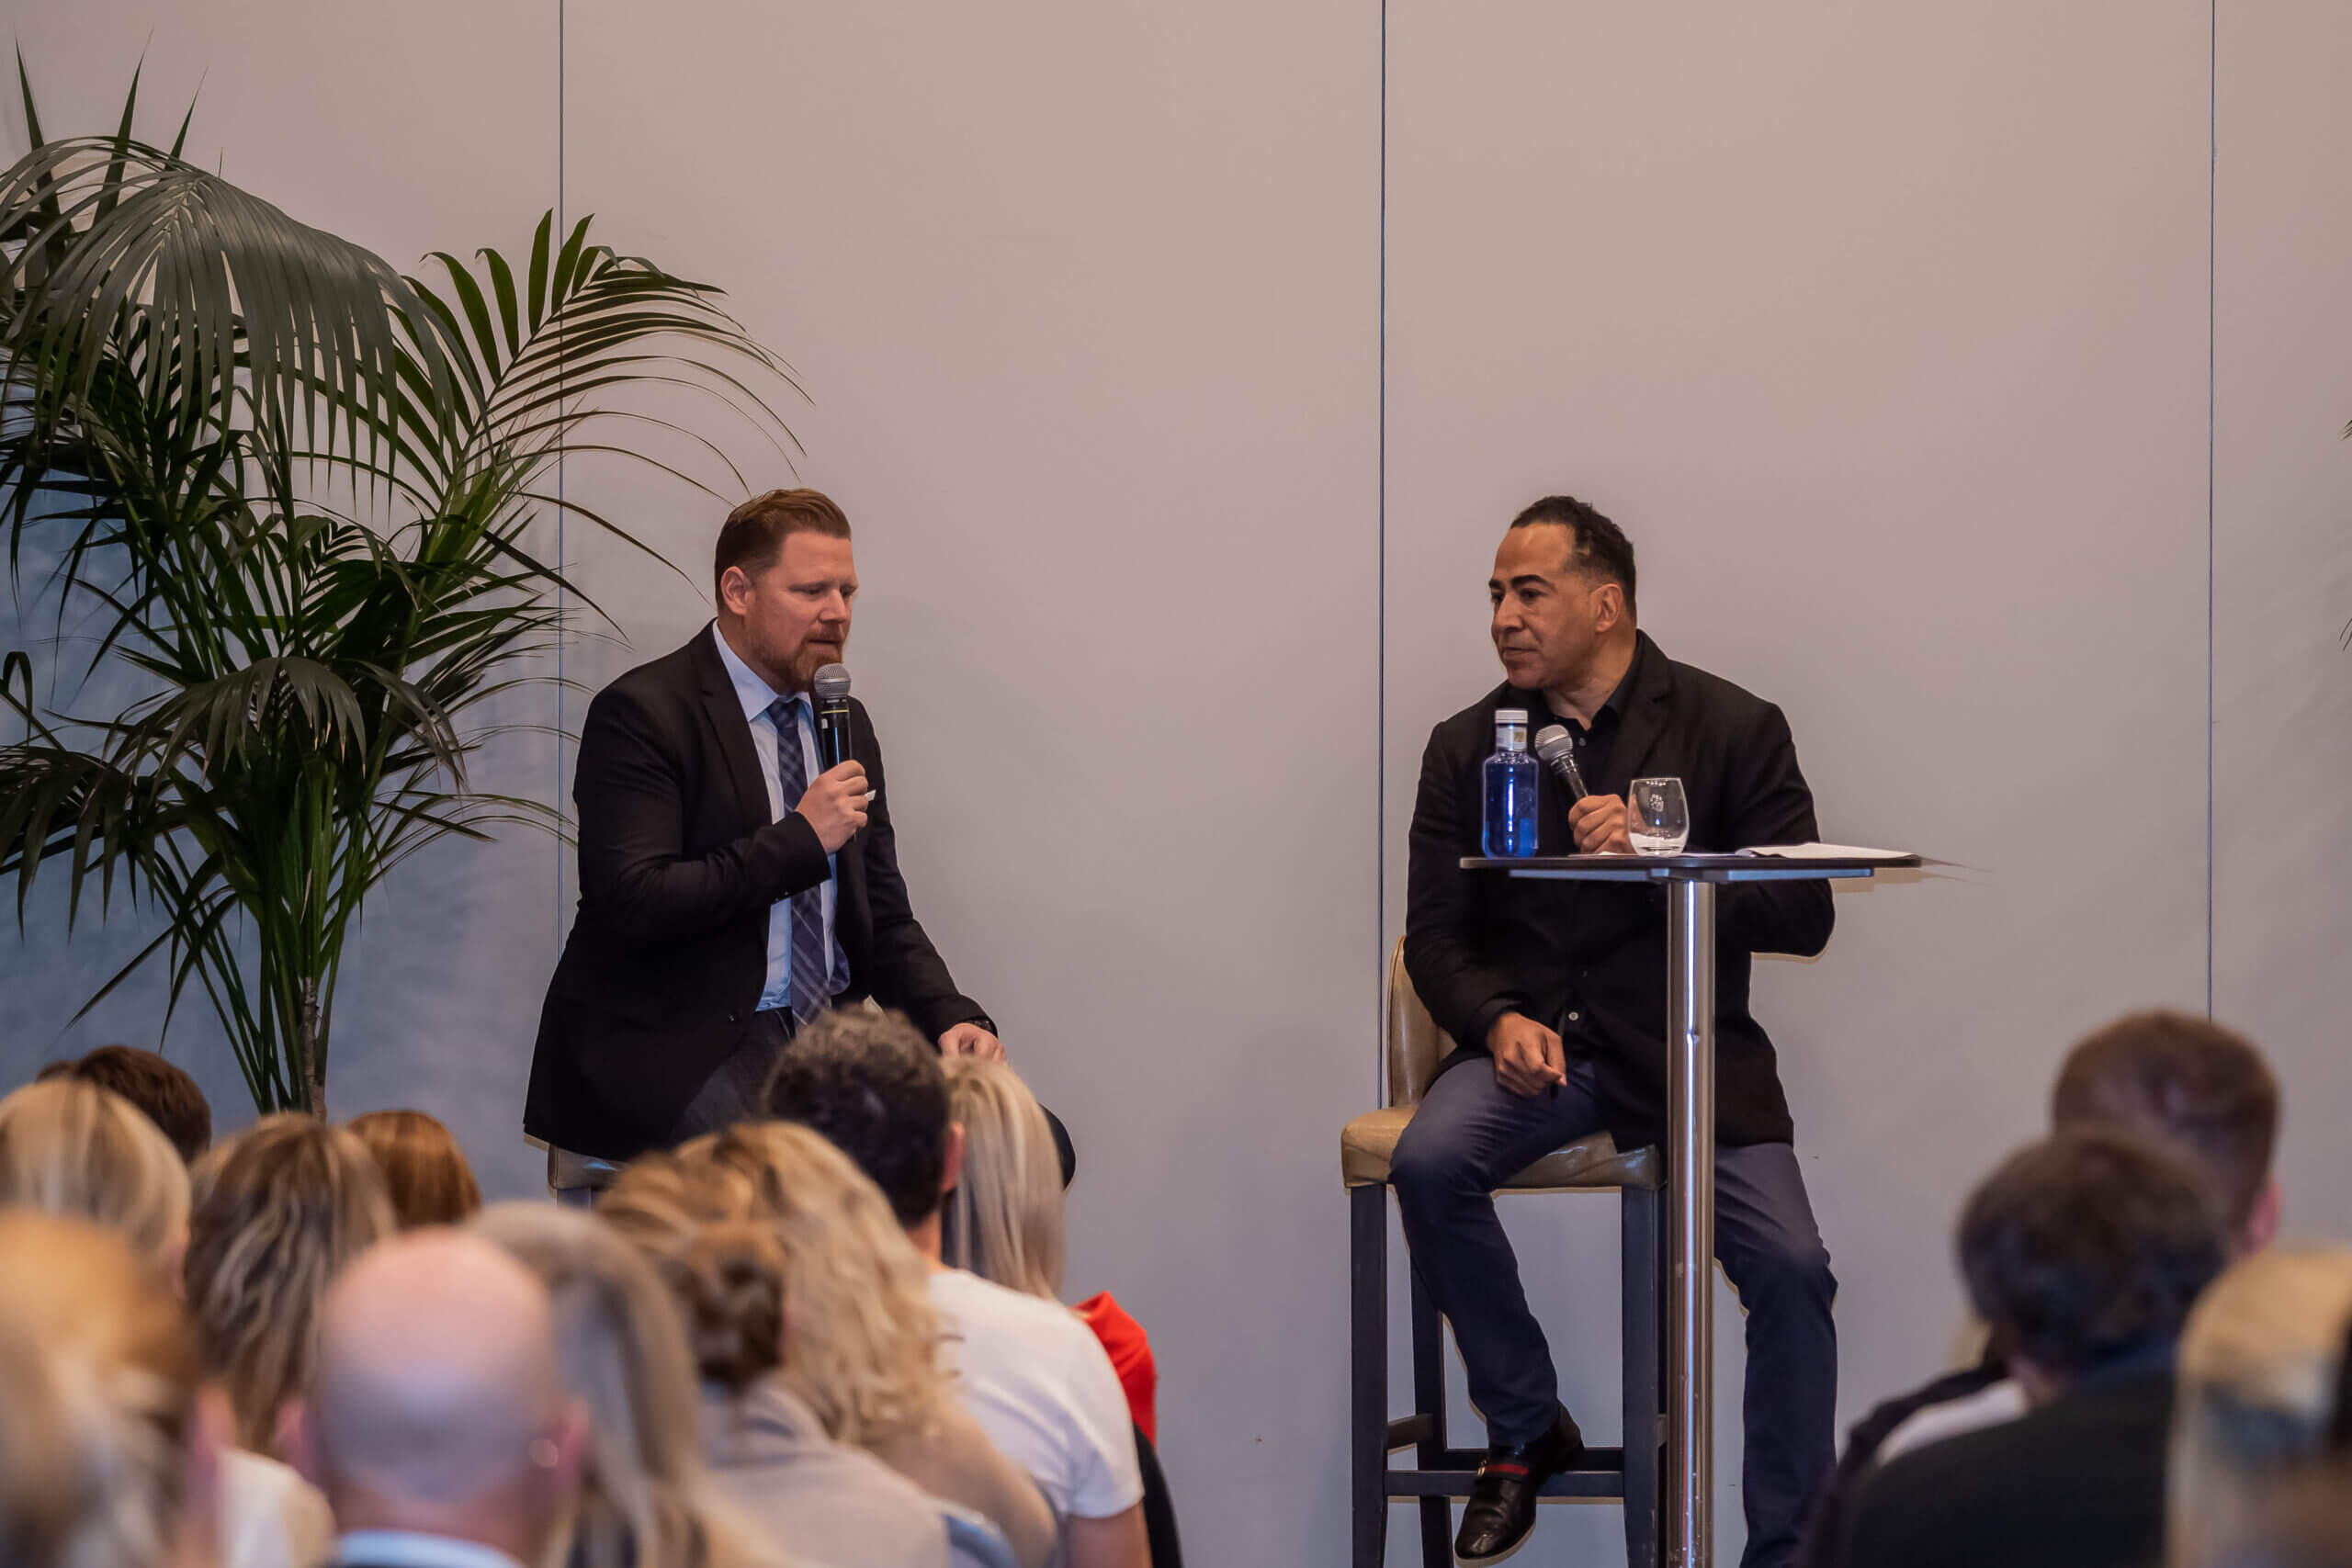 Tim Storey on stage interviewing Marcus